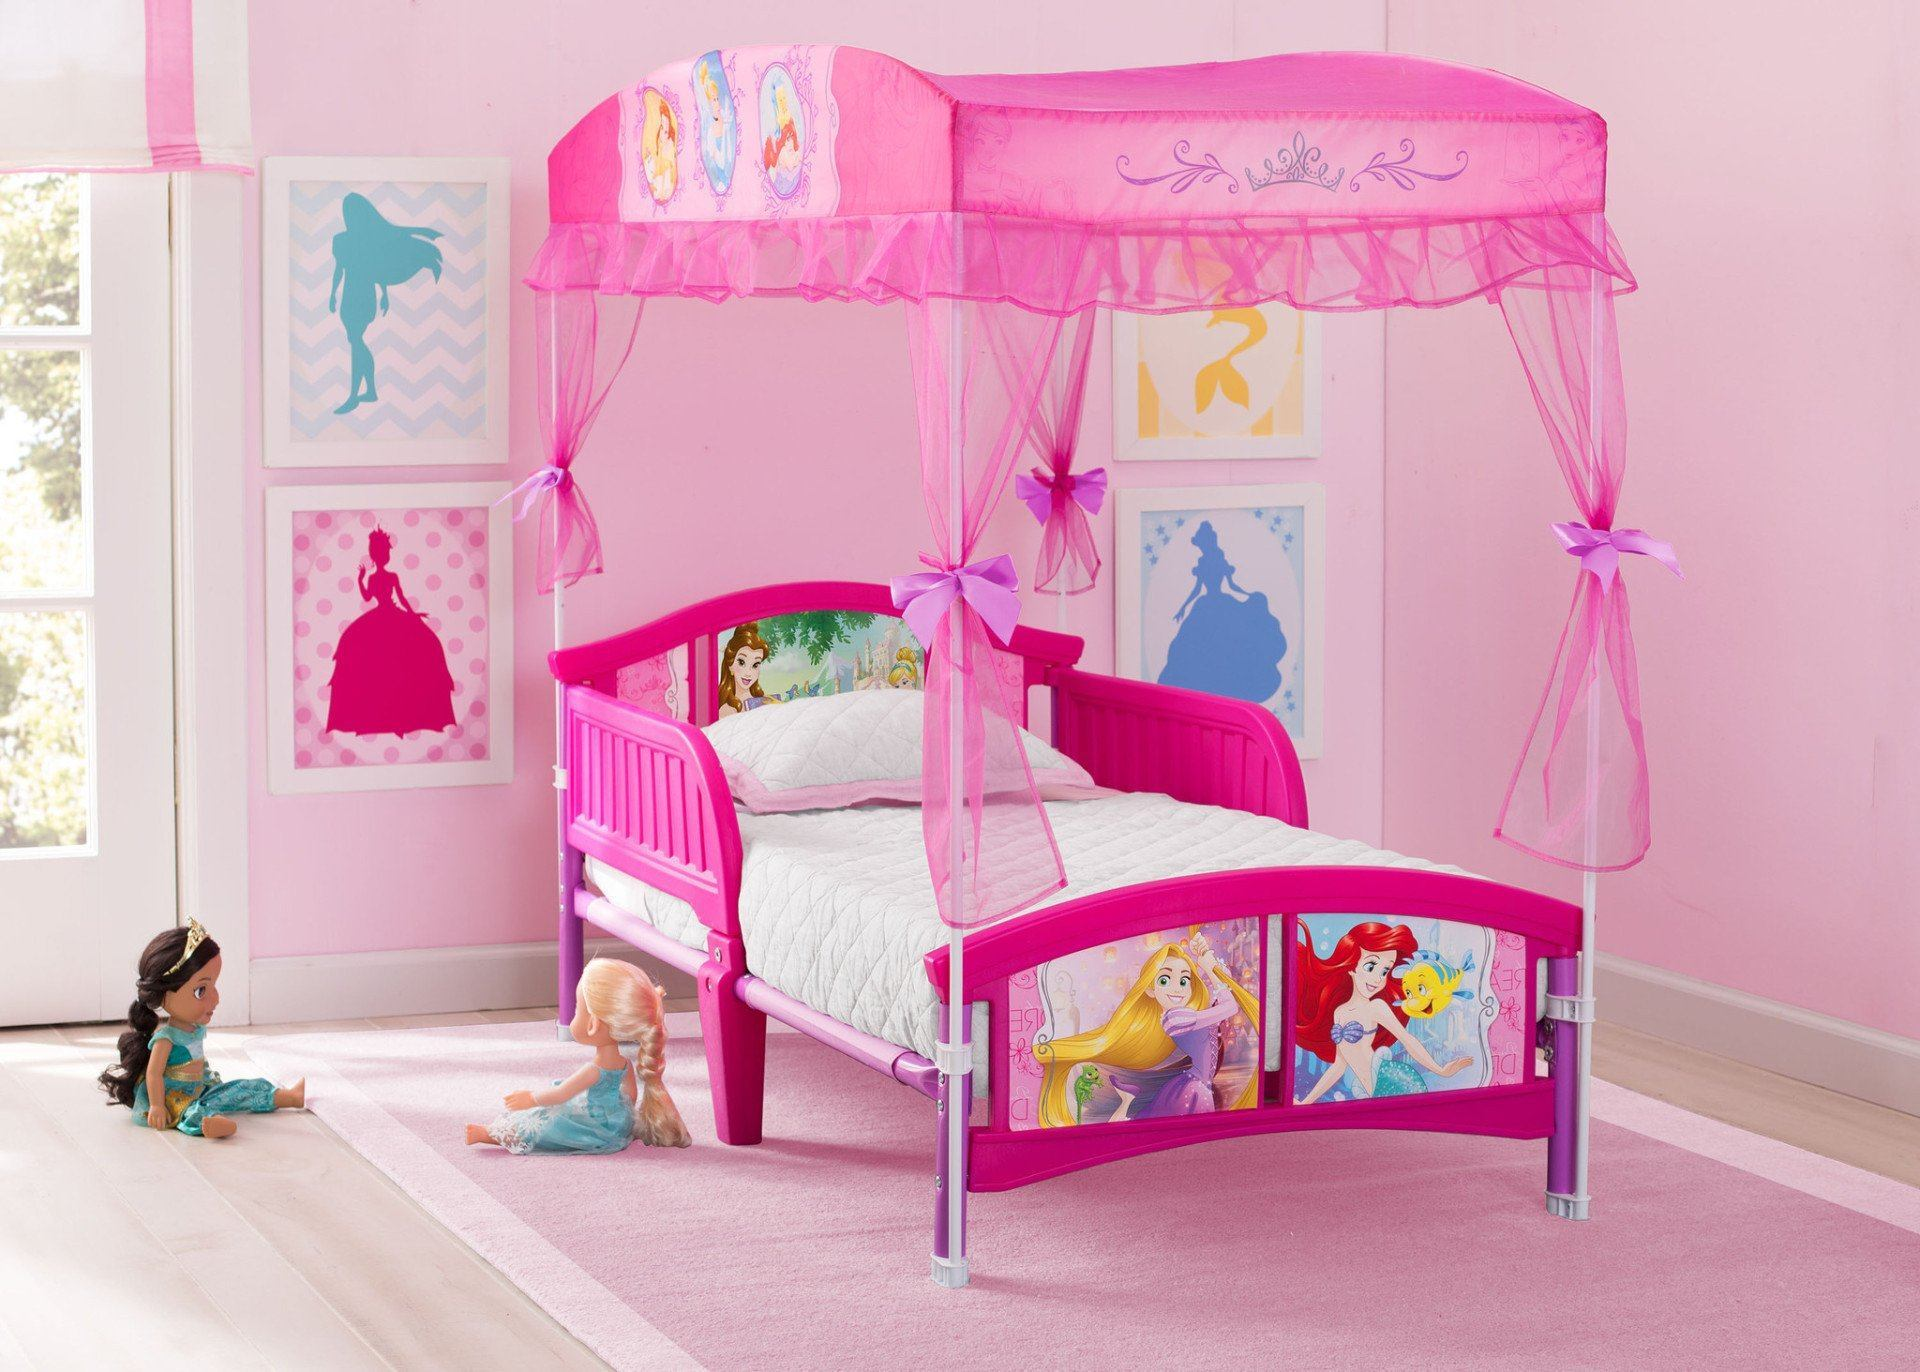 Toddler Bed For Girl Princess: Princess Toddler Canopy Bed